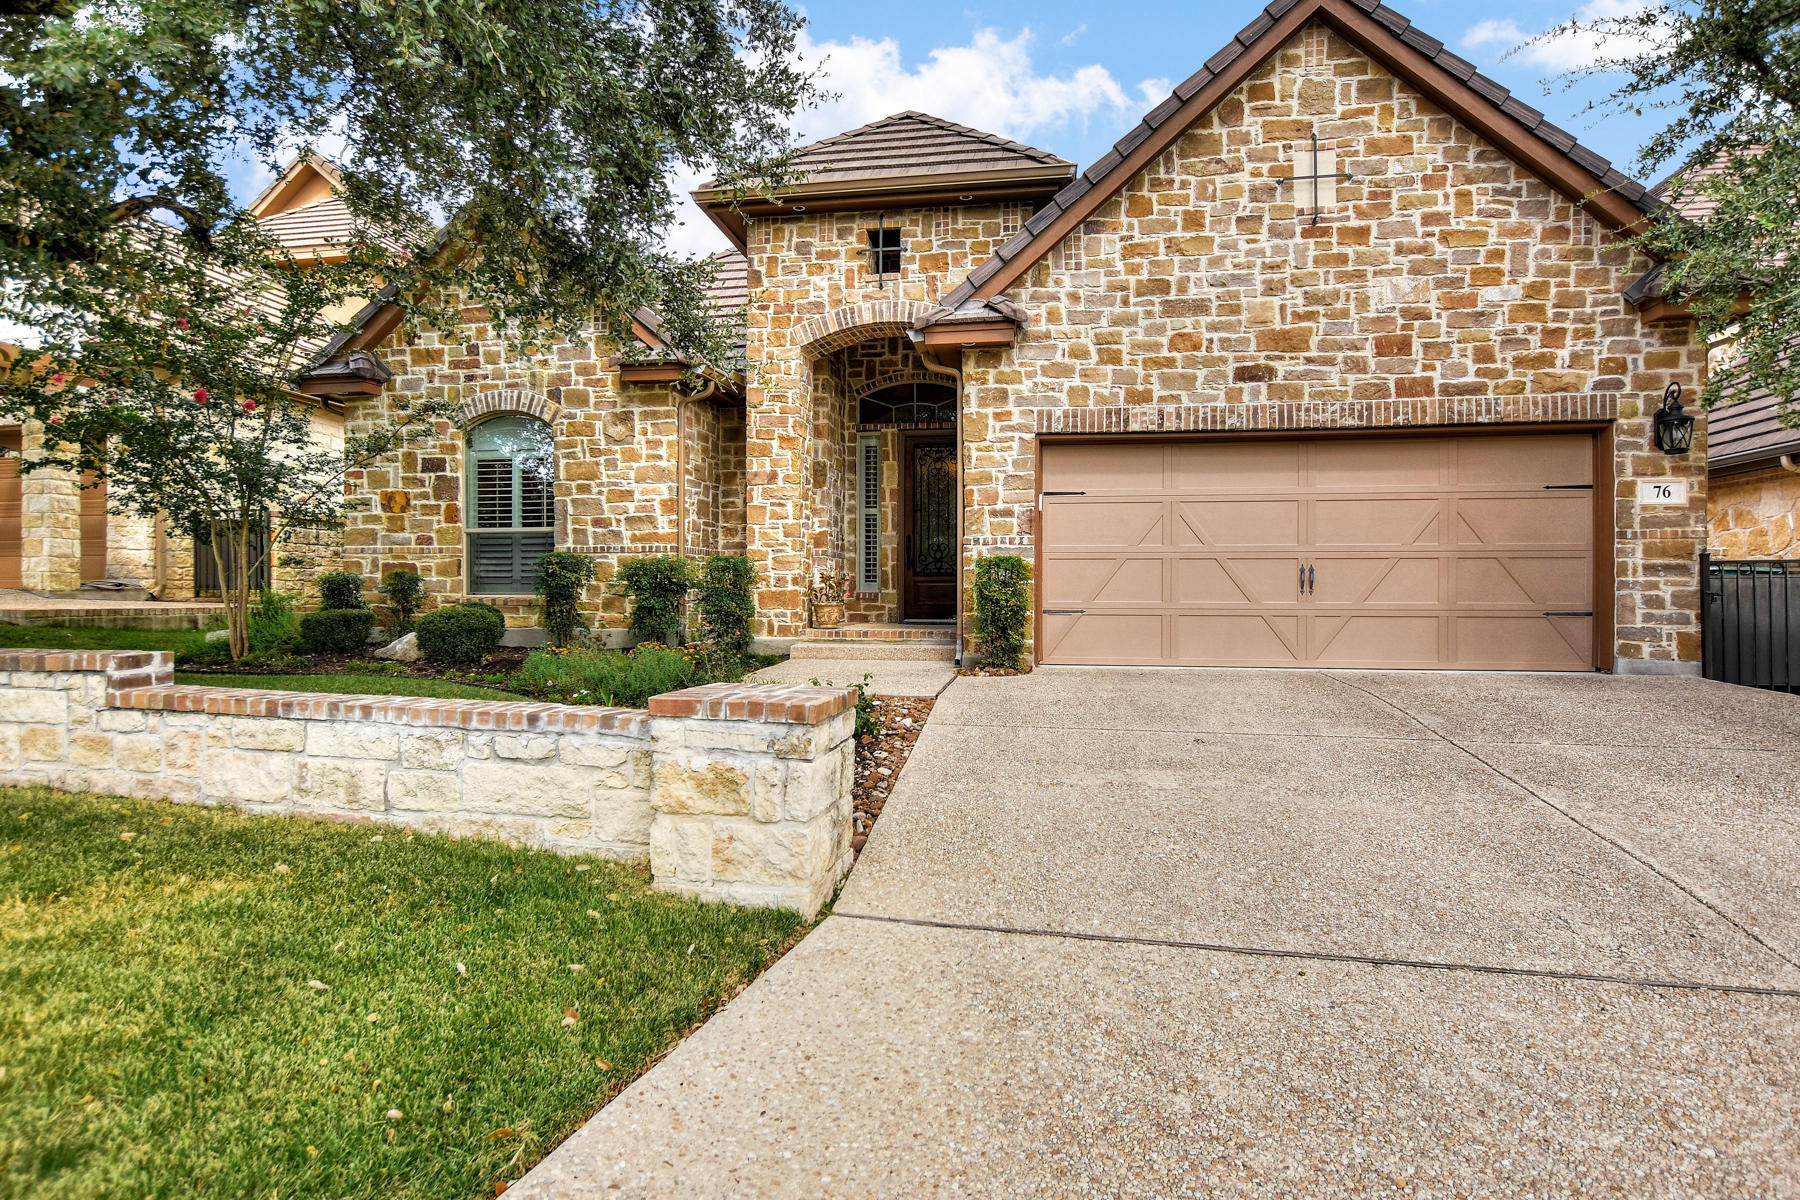 Single Family Home for Sale at Beautiful Single-Story Home in The Dominion 76 Westcourt Ln San Antonio, Texas 78257 United States